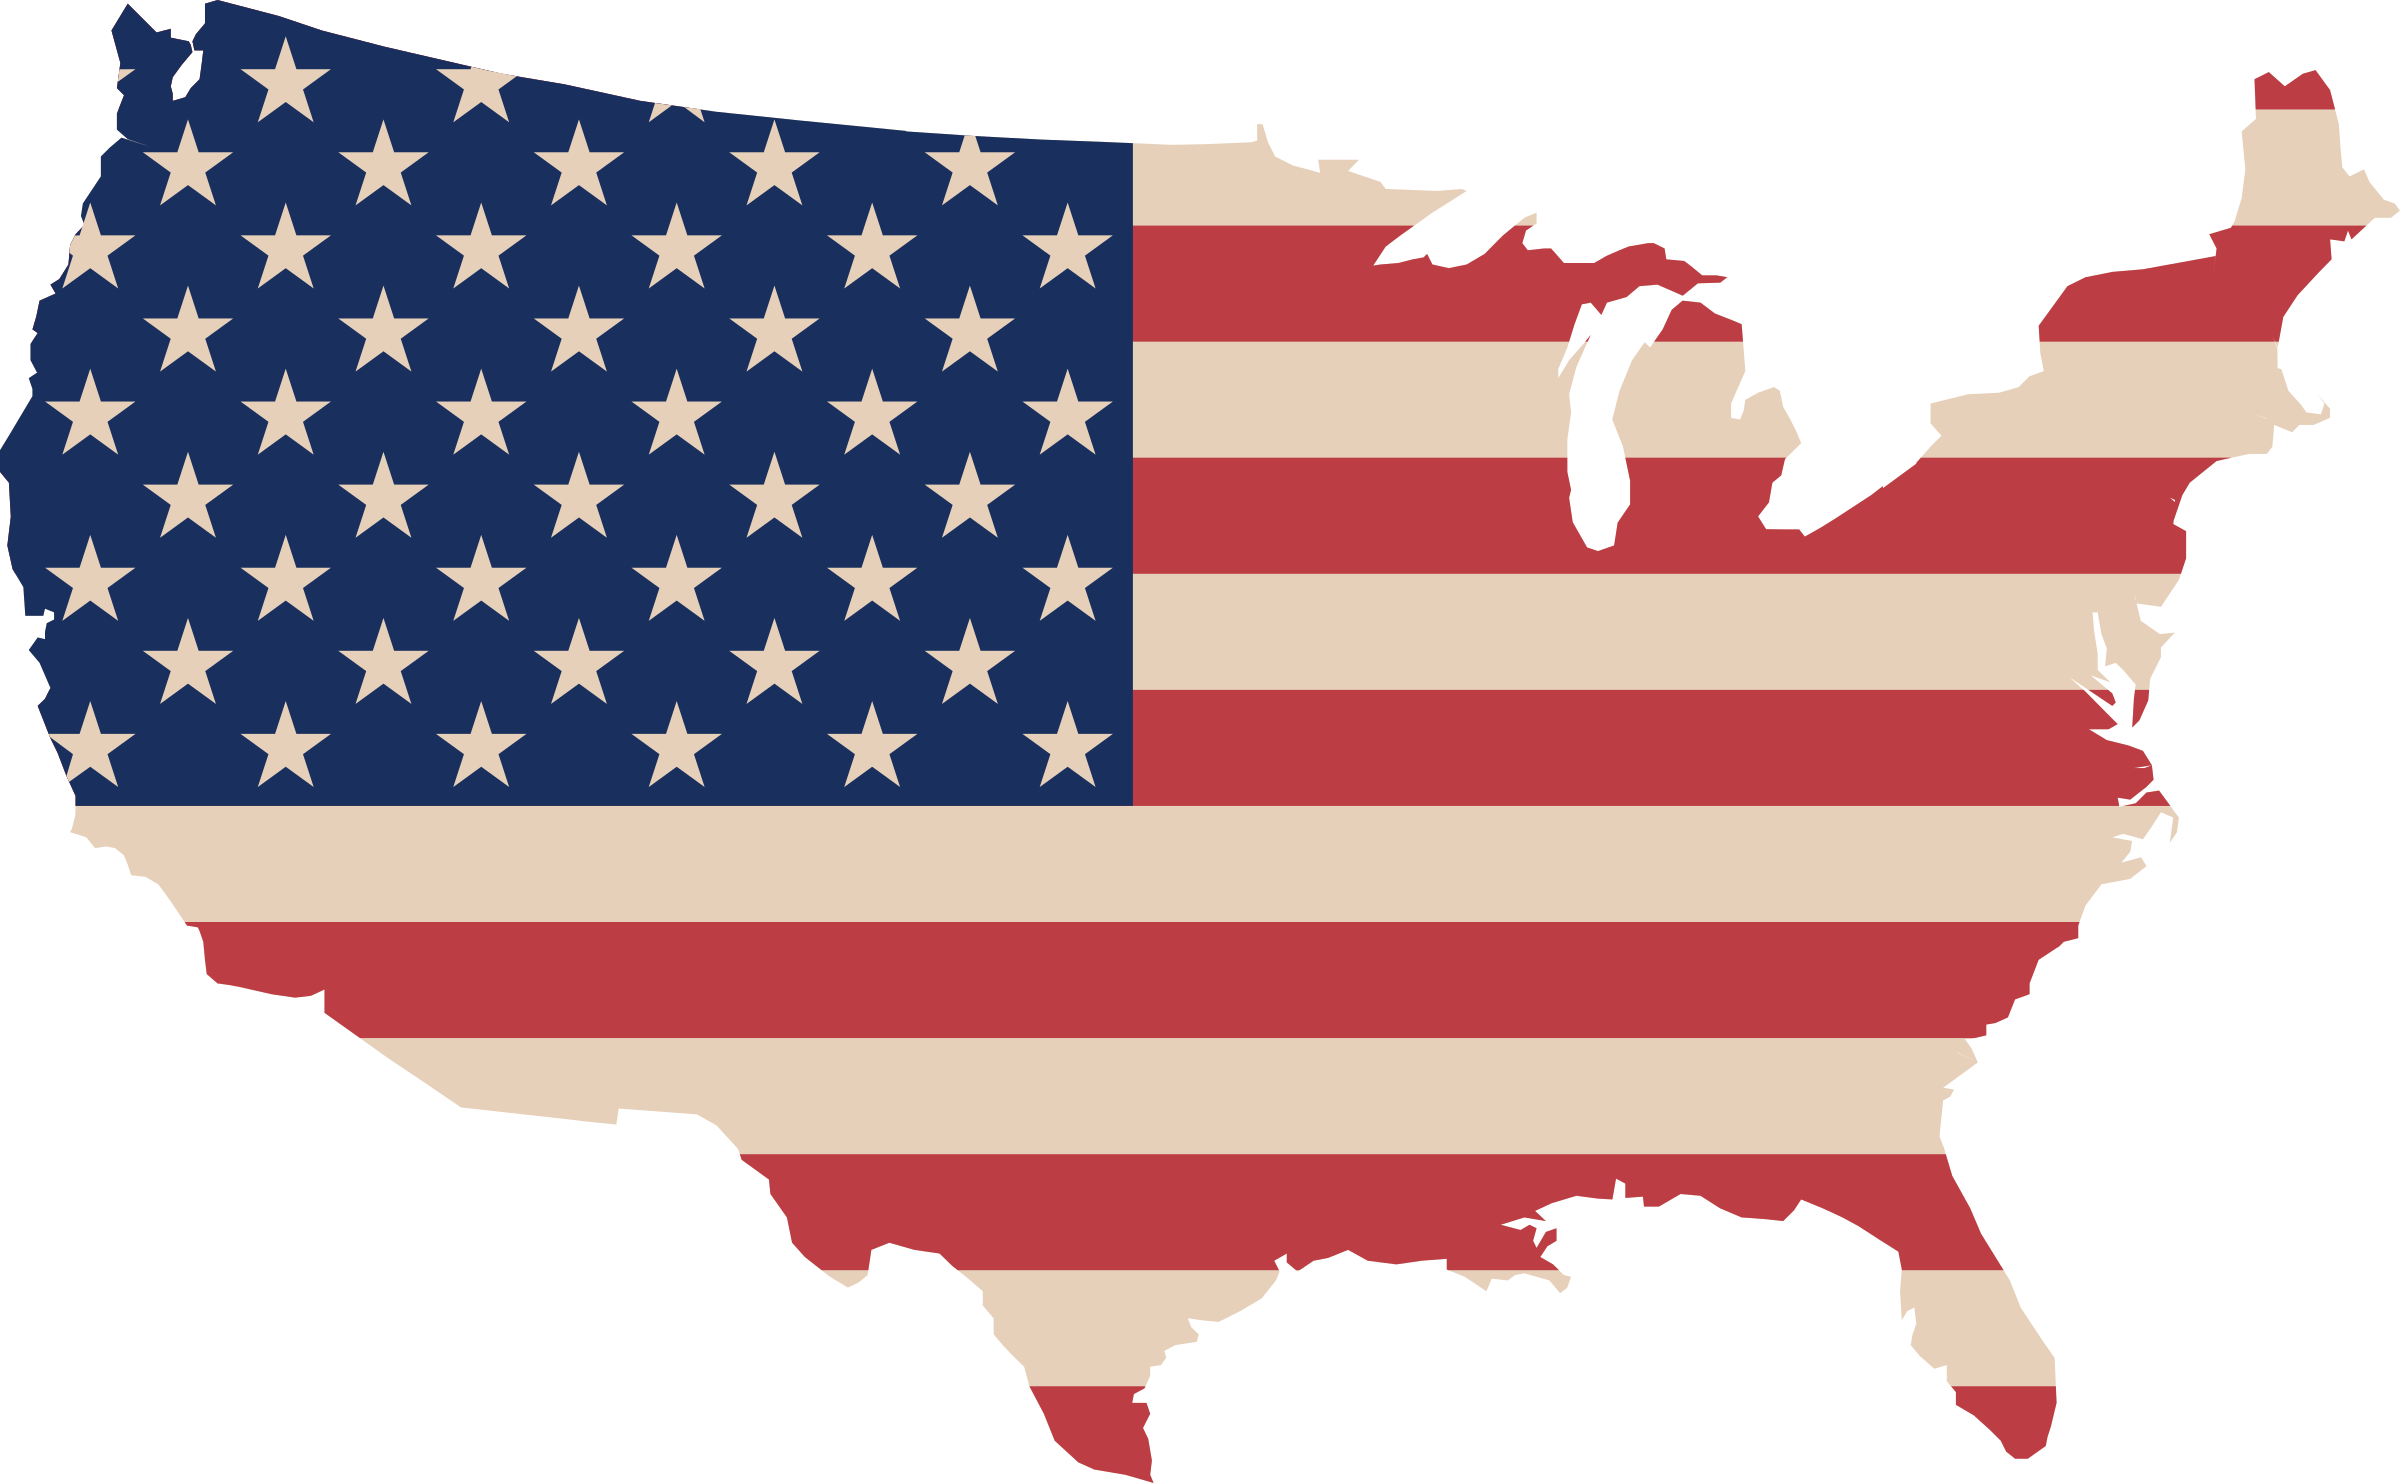 R clipart flag. Usa map and big